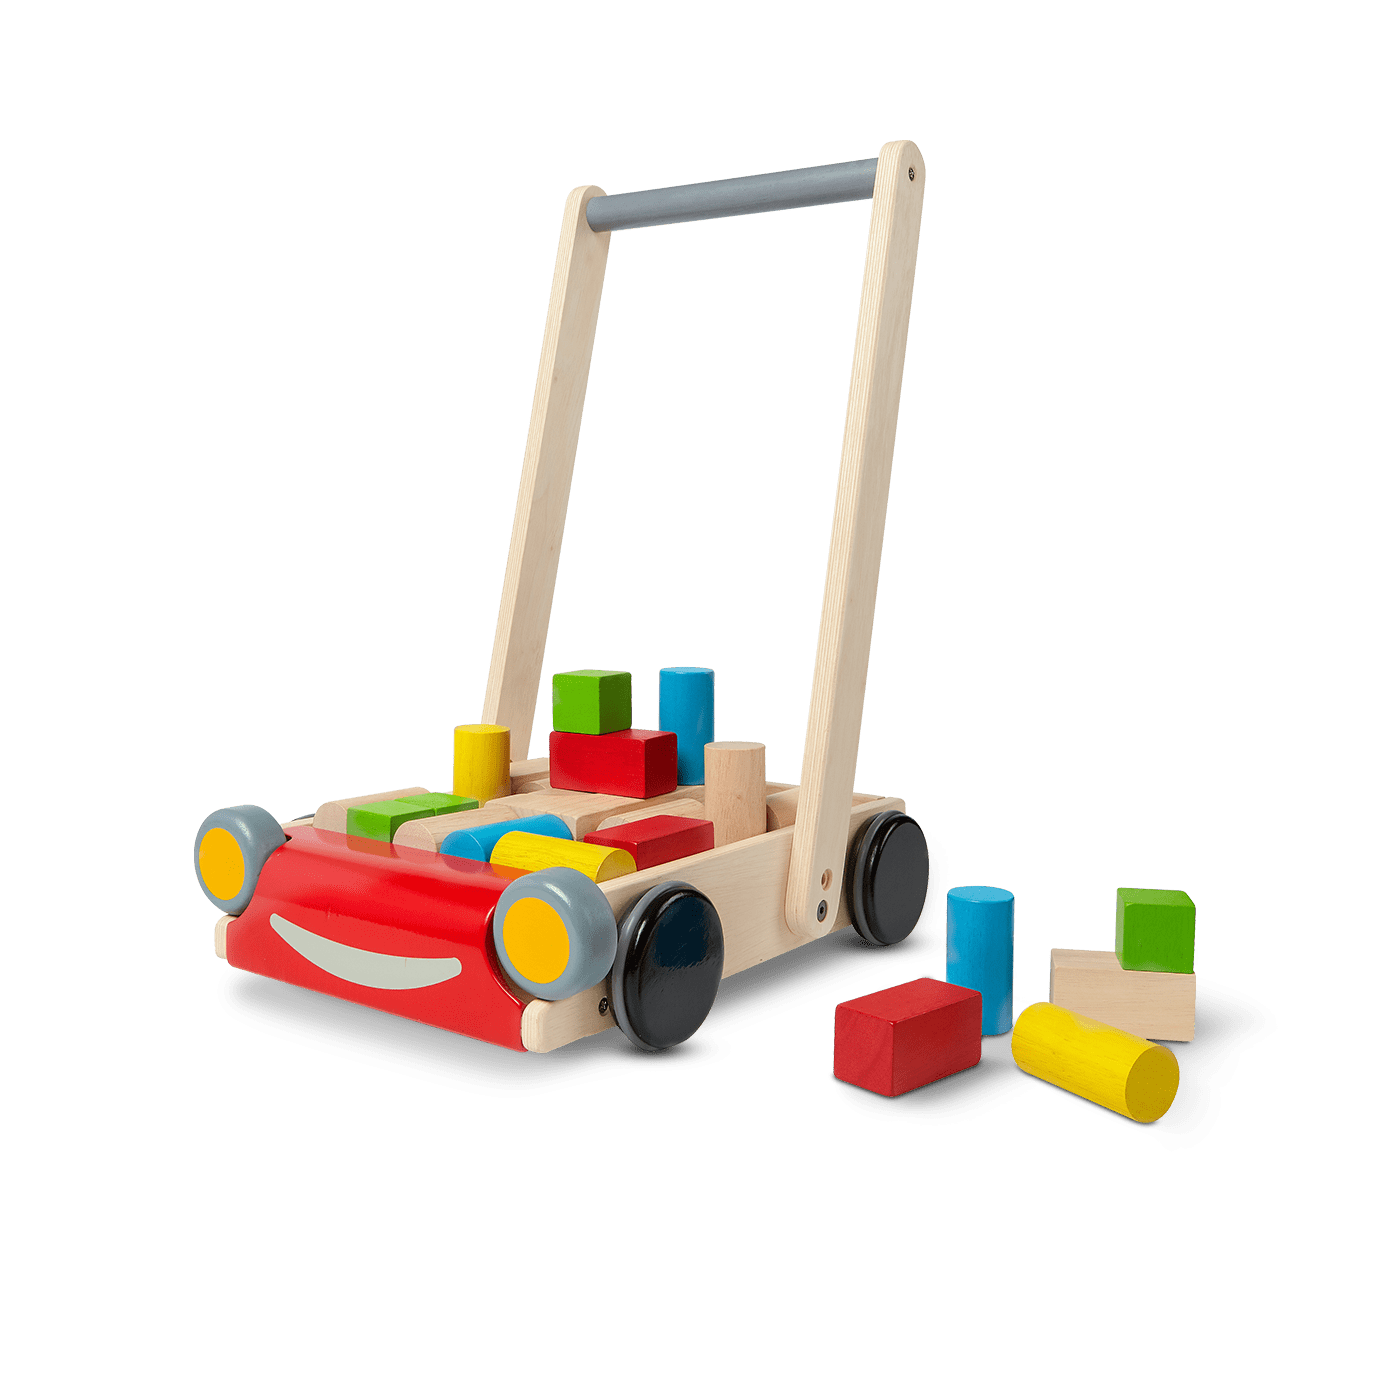 5123_PlanToys_BABY_WALKER_Push_and_Pull_Creative_Gross_Motor_Coordination_Mathematical_12m_Wooden_toys_Education_toys_Safety_Toys_Non-toxic_0.png